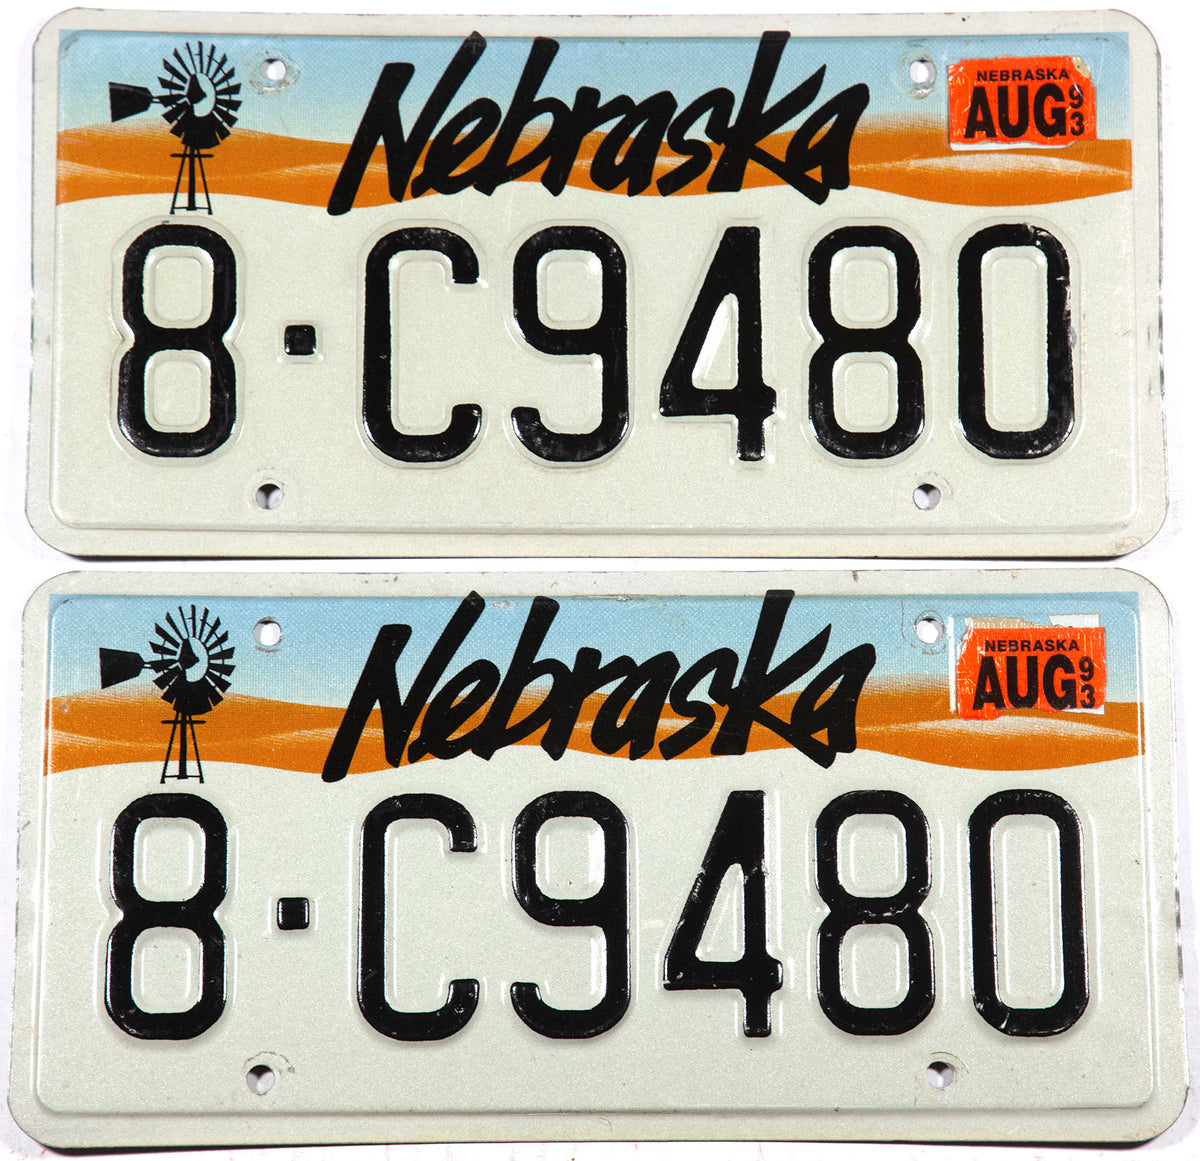 1993 Nebraska car license plates in very good plus condition from Hall county